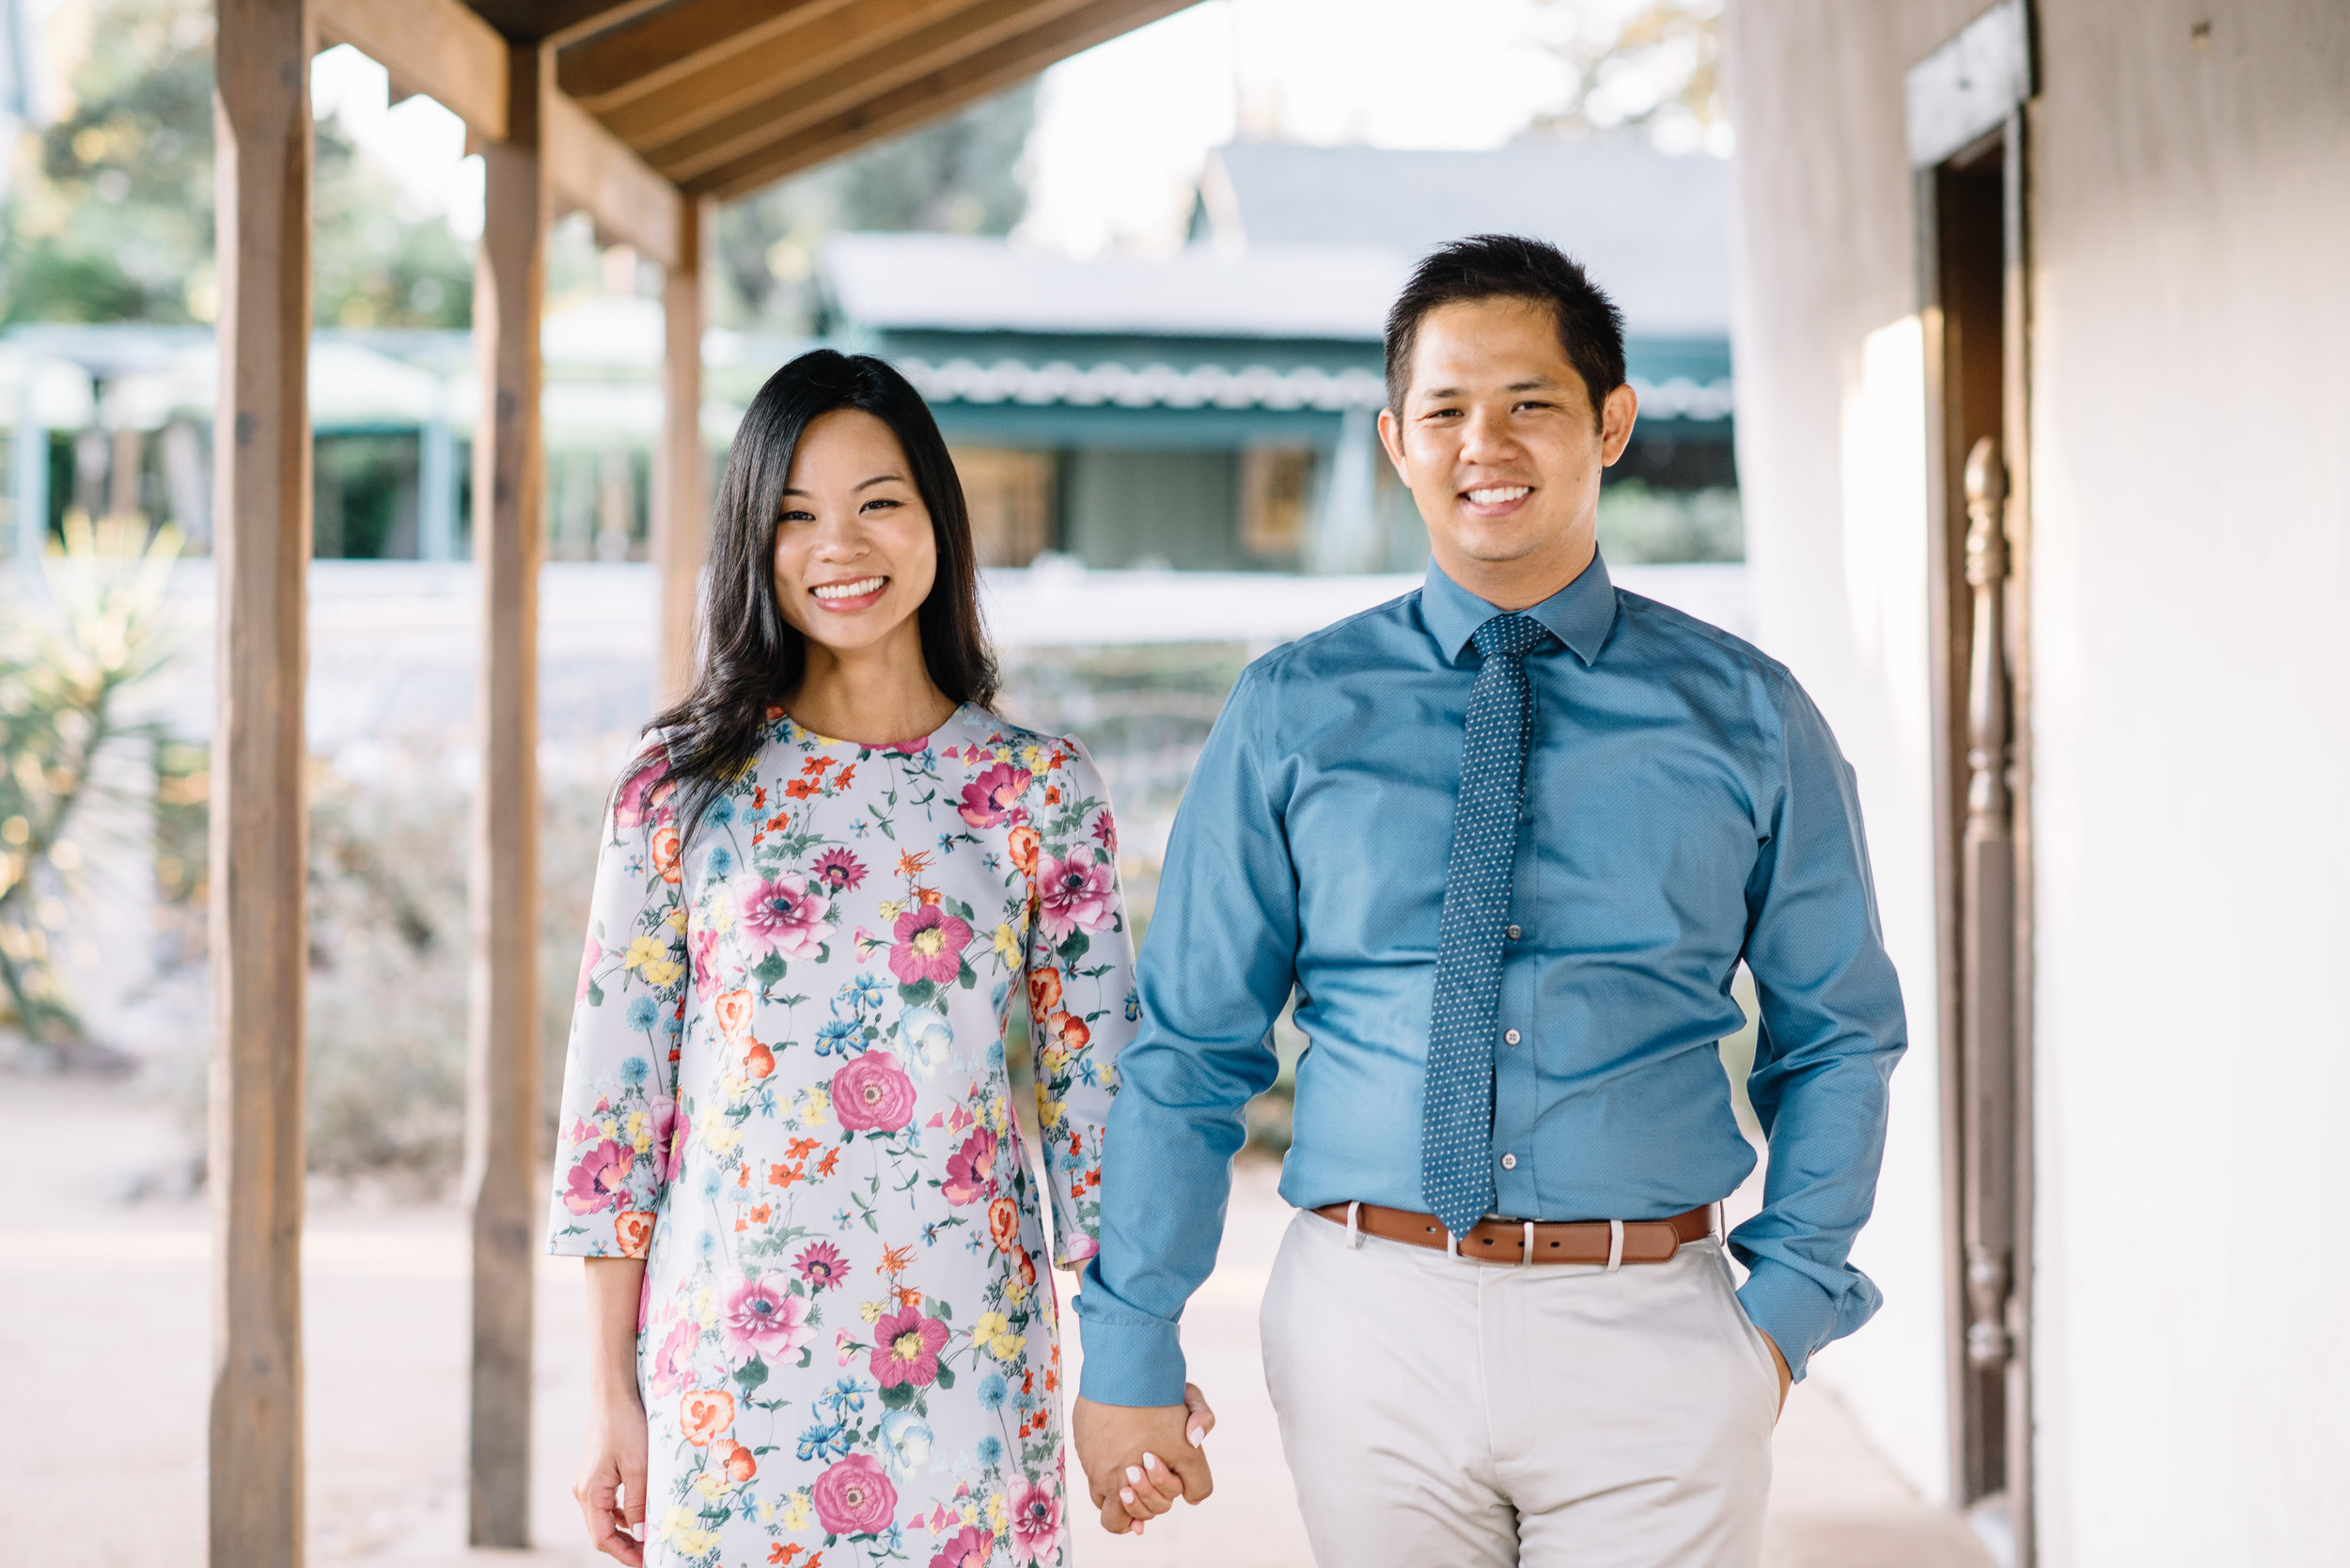 jennifer-jayn-photography-san-juan-capistrano-engagement-session-12.jpg